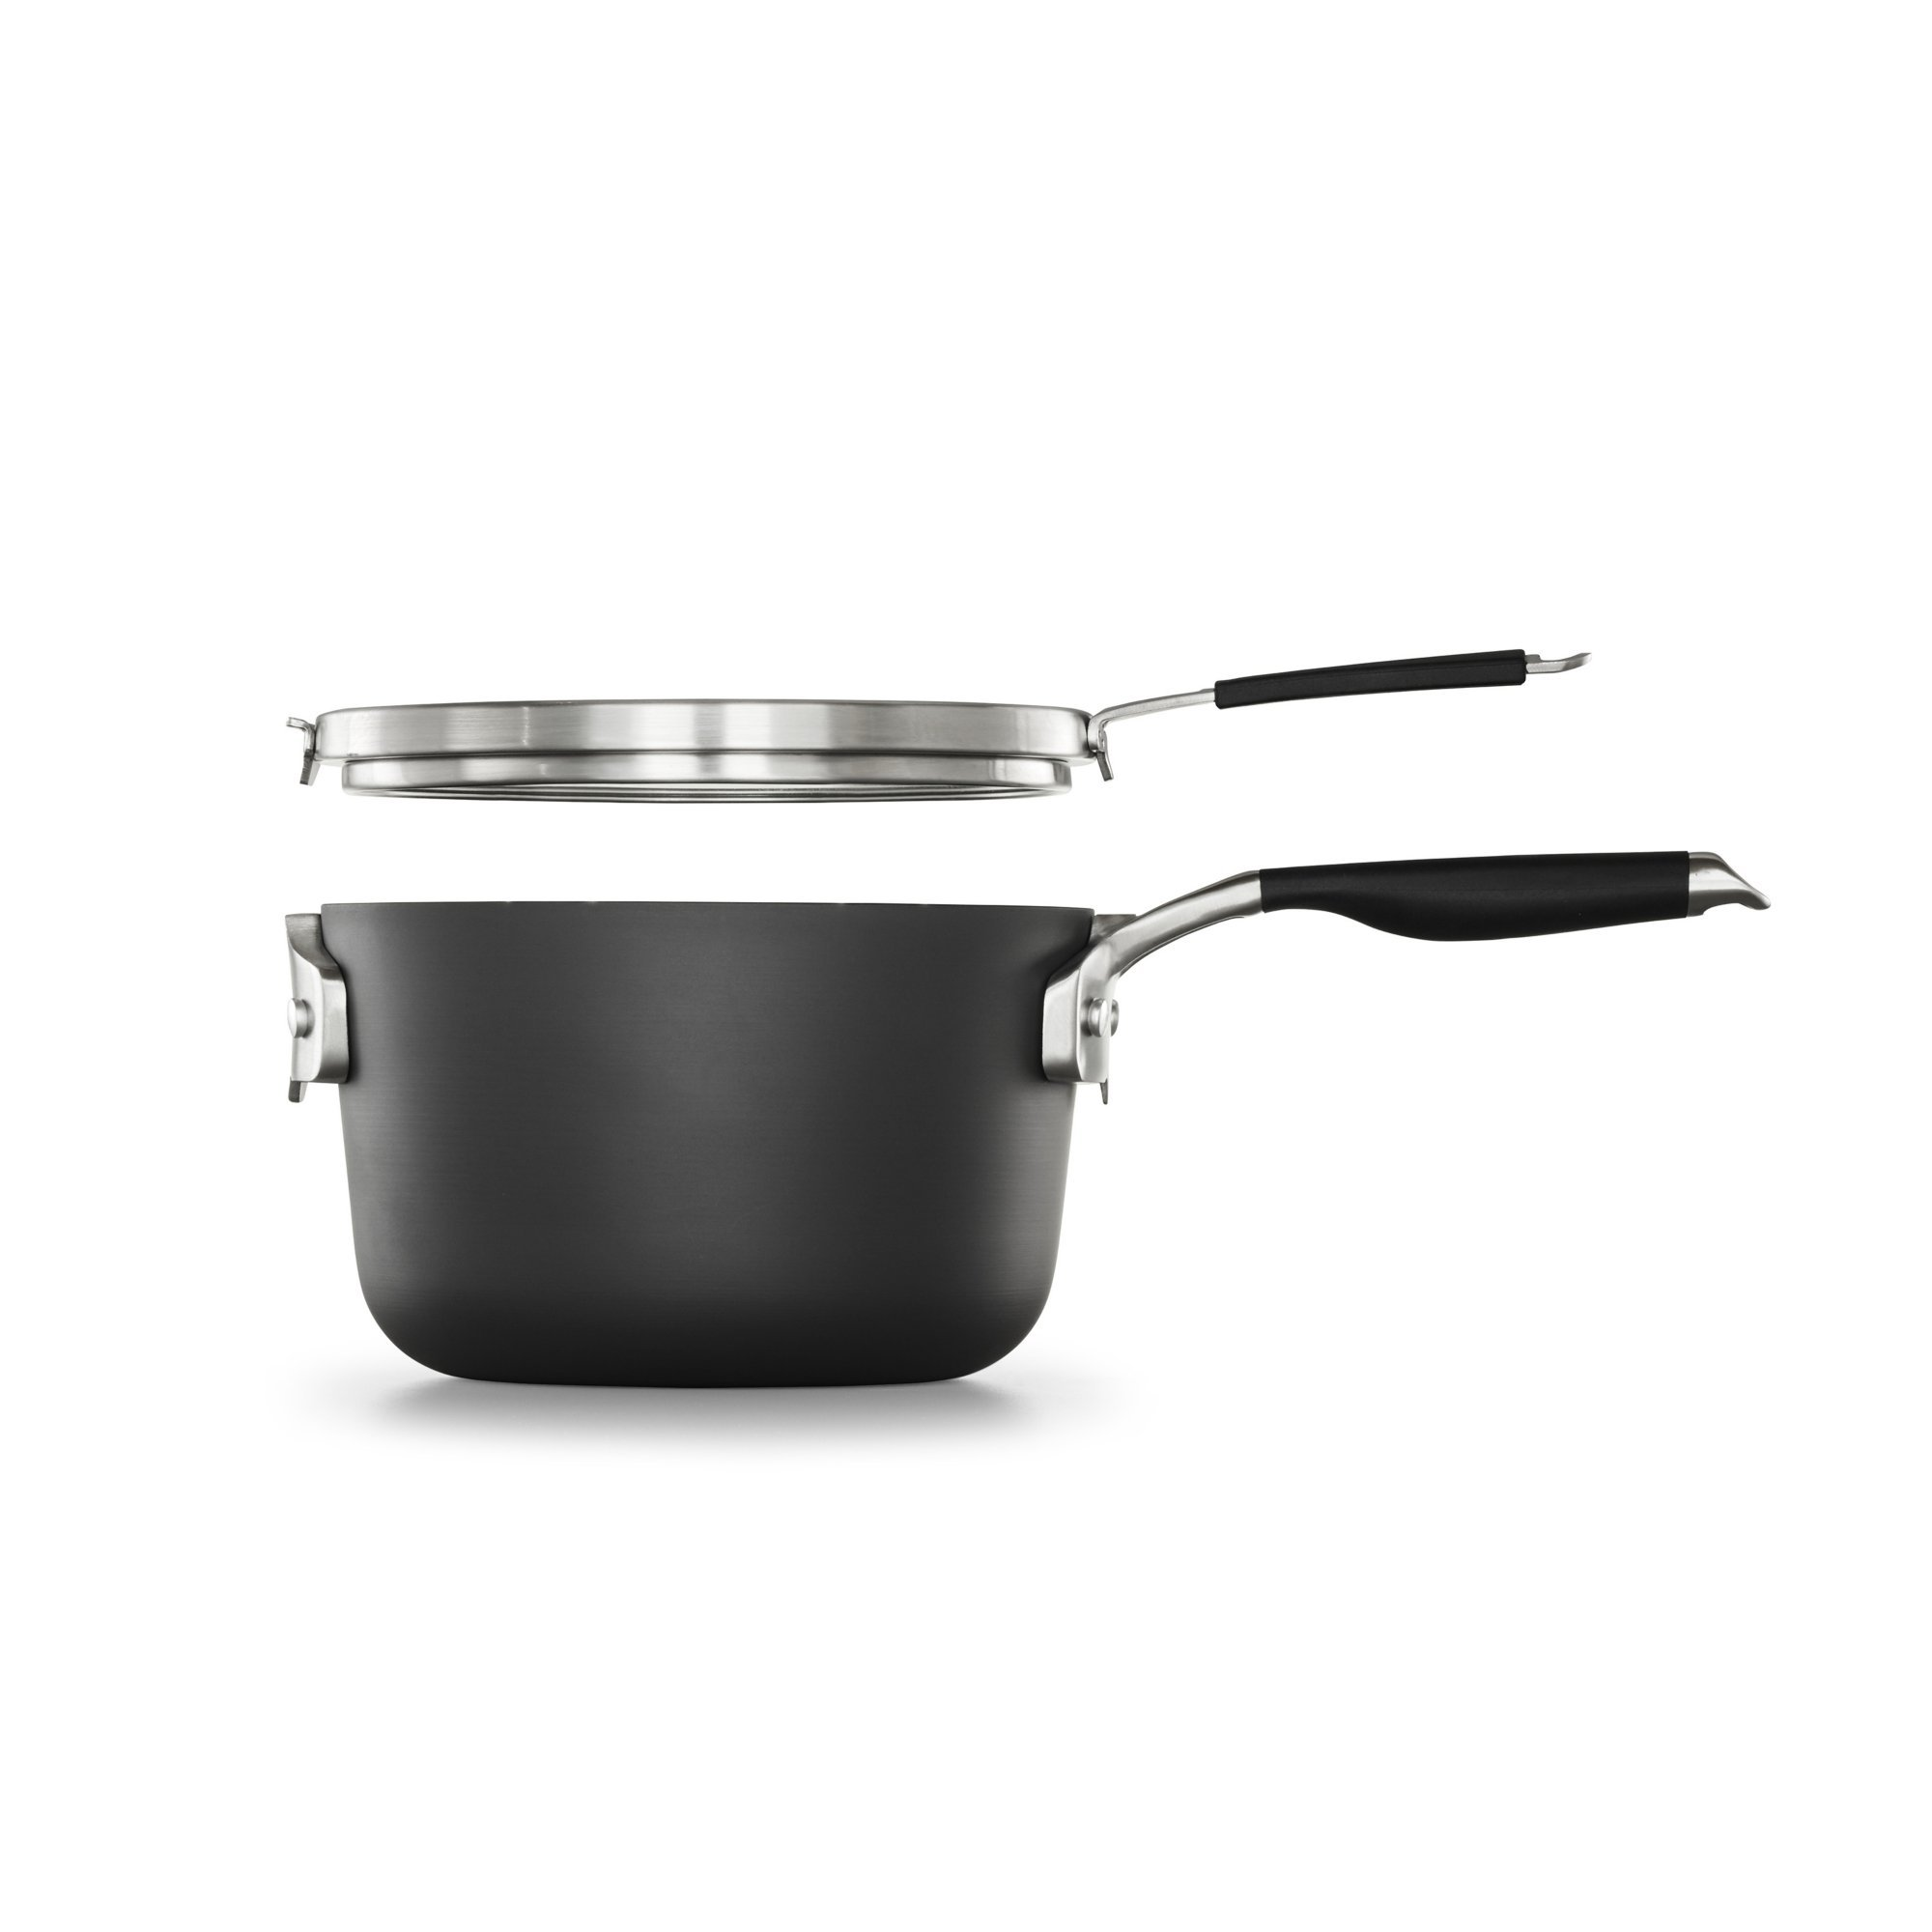 Select by Calphalon Space Saving Hard-Anodized Nonstick 3.5-Quart Sauce Pan with Cover